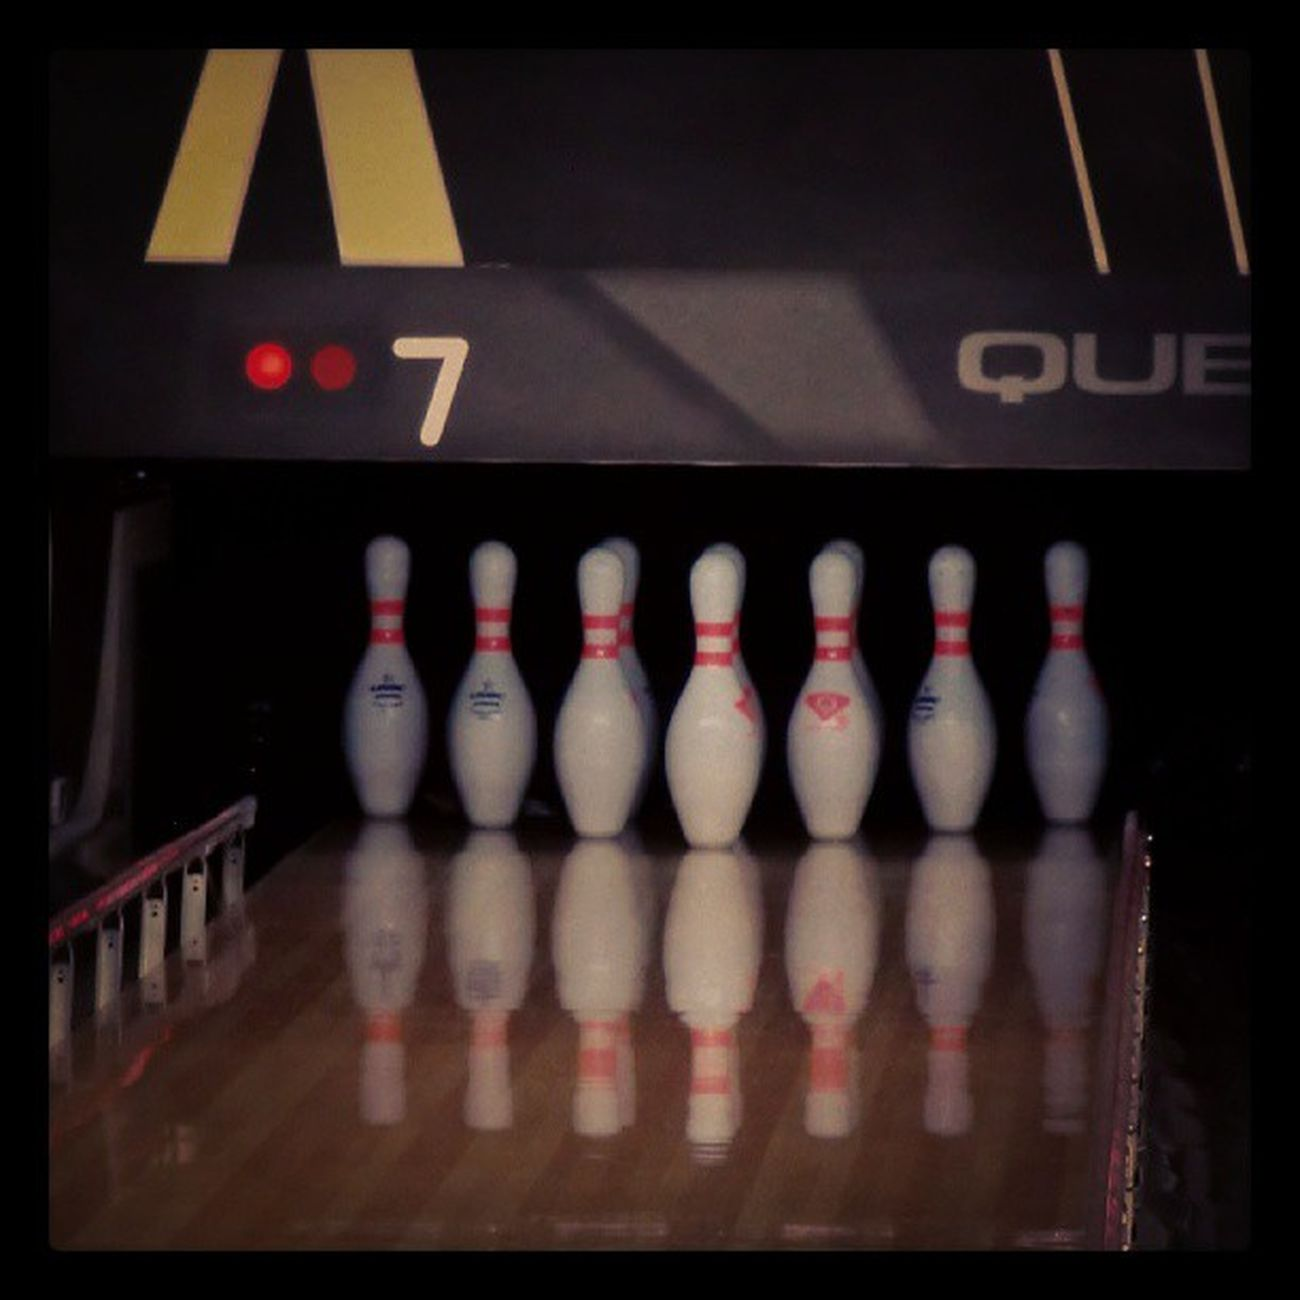 Bowling Dimanchesouslapluie Apresmidipluvieux Instagram instaoftheday photographies picoftheday pics photooftheday